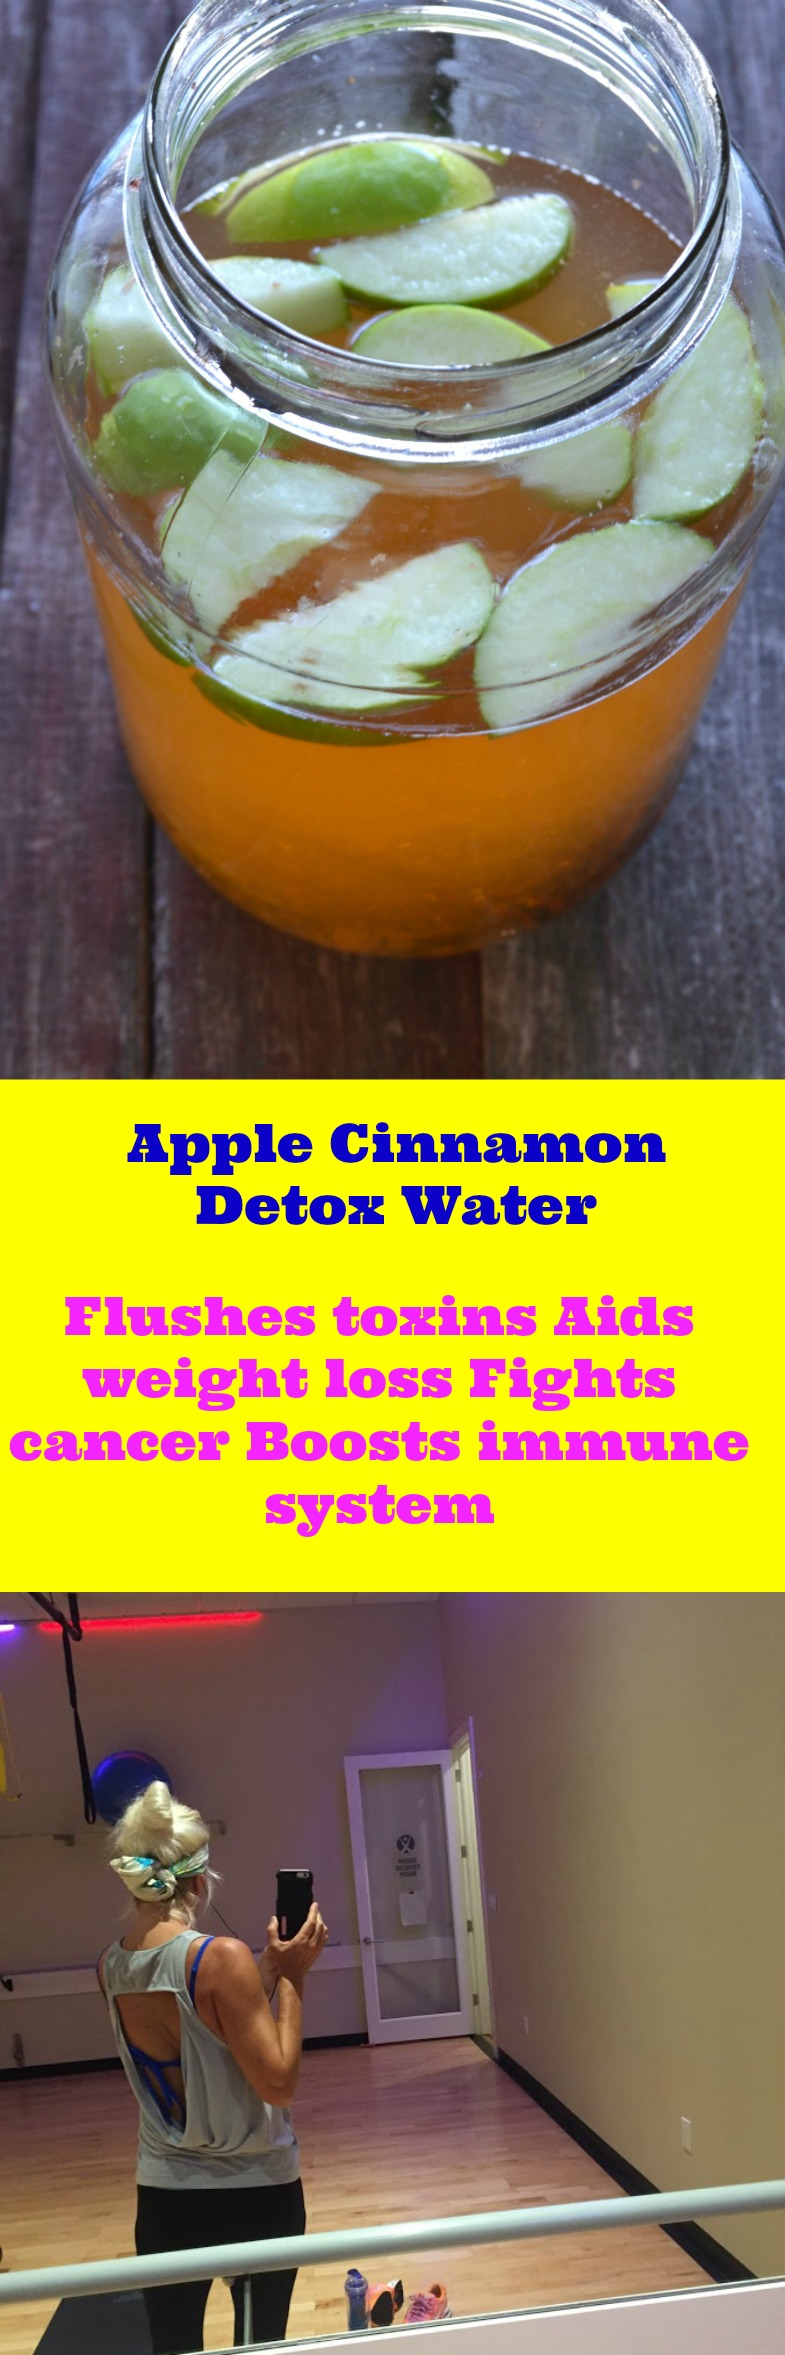 How To Make Apple Cinnamon Detox Water. This recipe boosts your metabolism naturally that will help you burn more calories to boost your fat burning naturally.  You'll have more energy throughout your day guaranteed! Weightloss and Fat burning to cleanse your system.